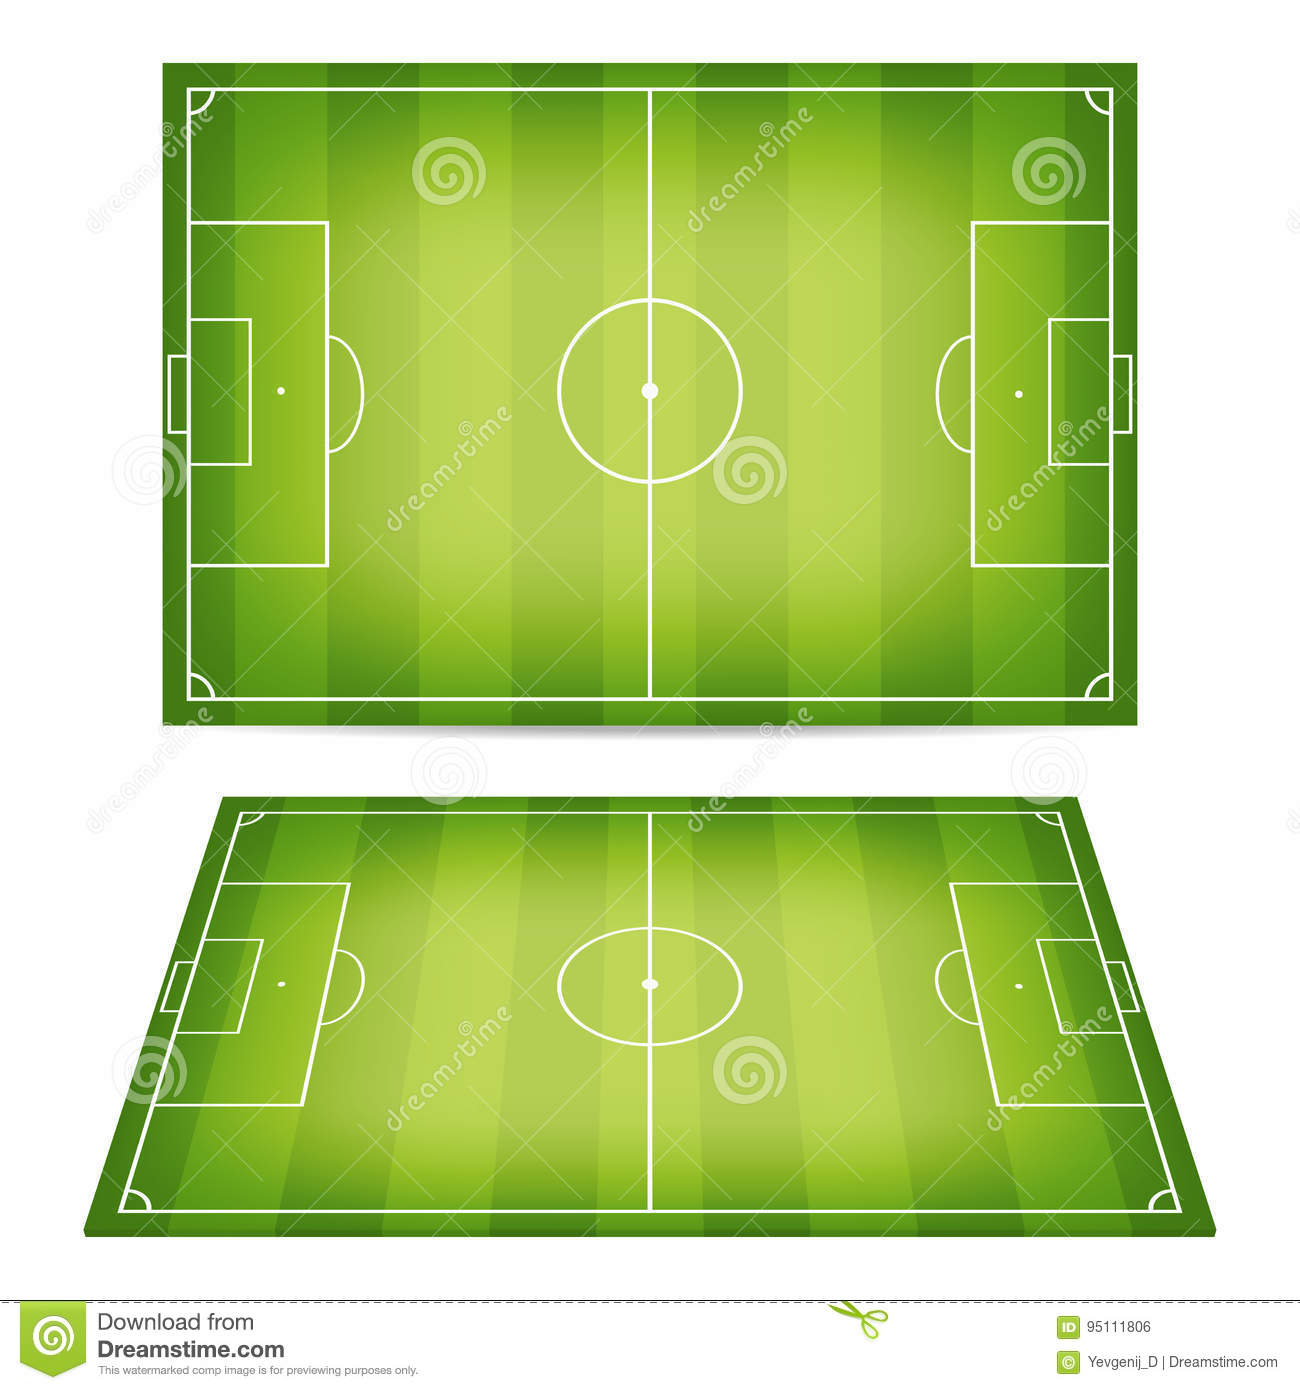 Vector Grass Football Field Background Royalty Free Cliparts, Vectors, And  Stock Illustration. Image 101925380.